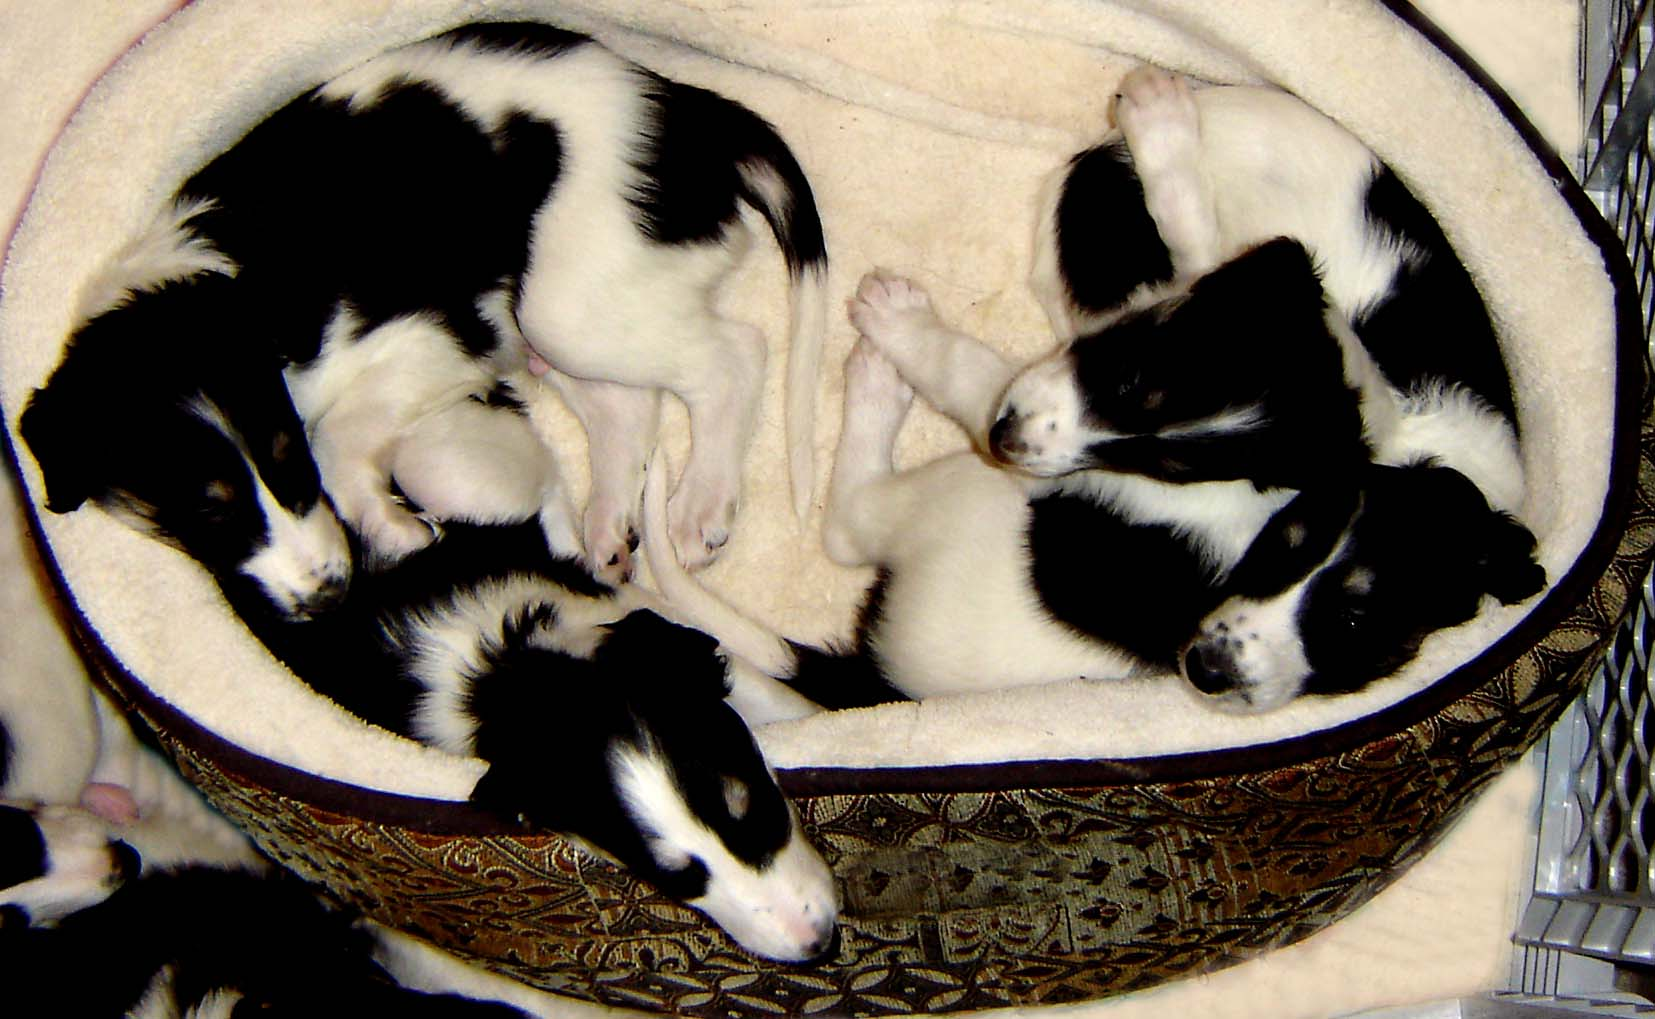 Borzoi puppies snuggled in bed